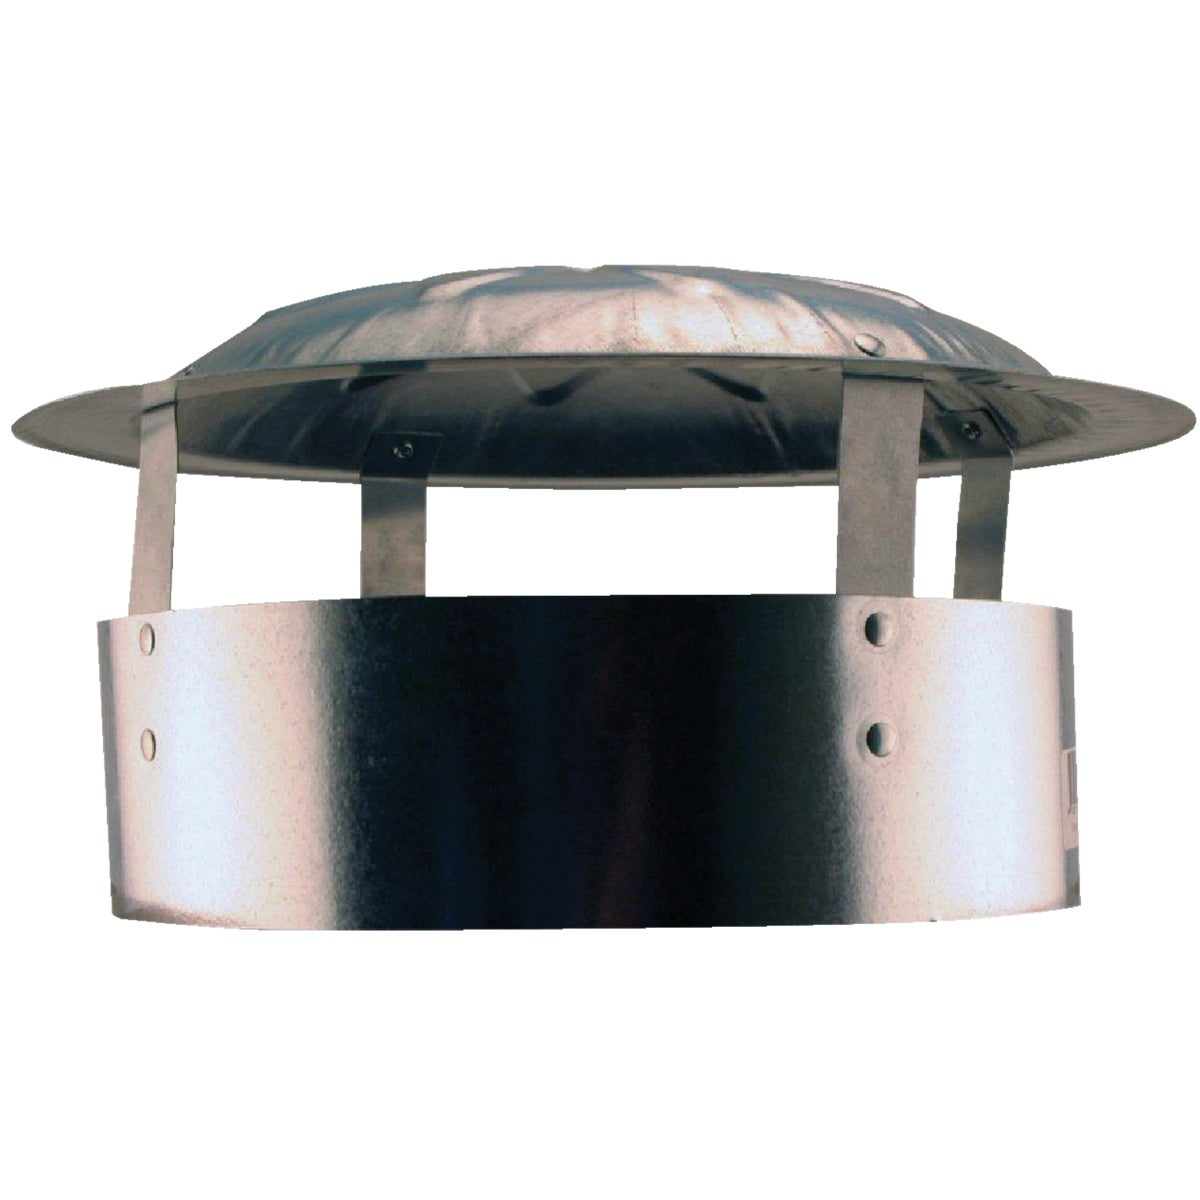 "10"" VENT PIPE CAP - D-290 by S & K Products Co"